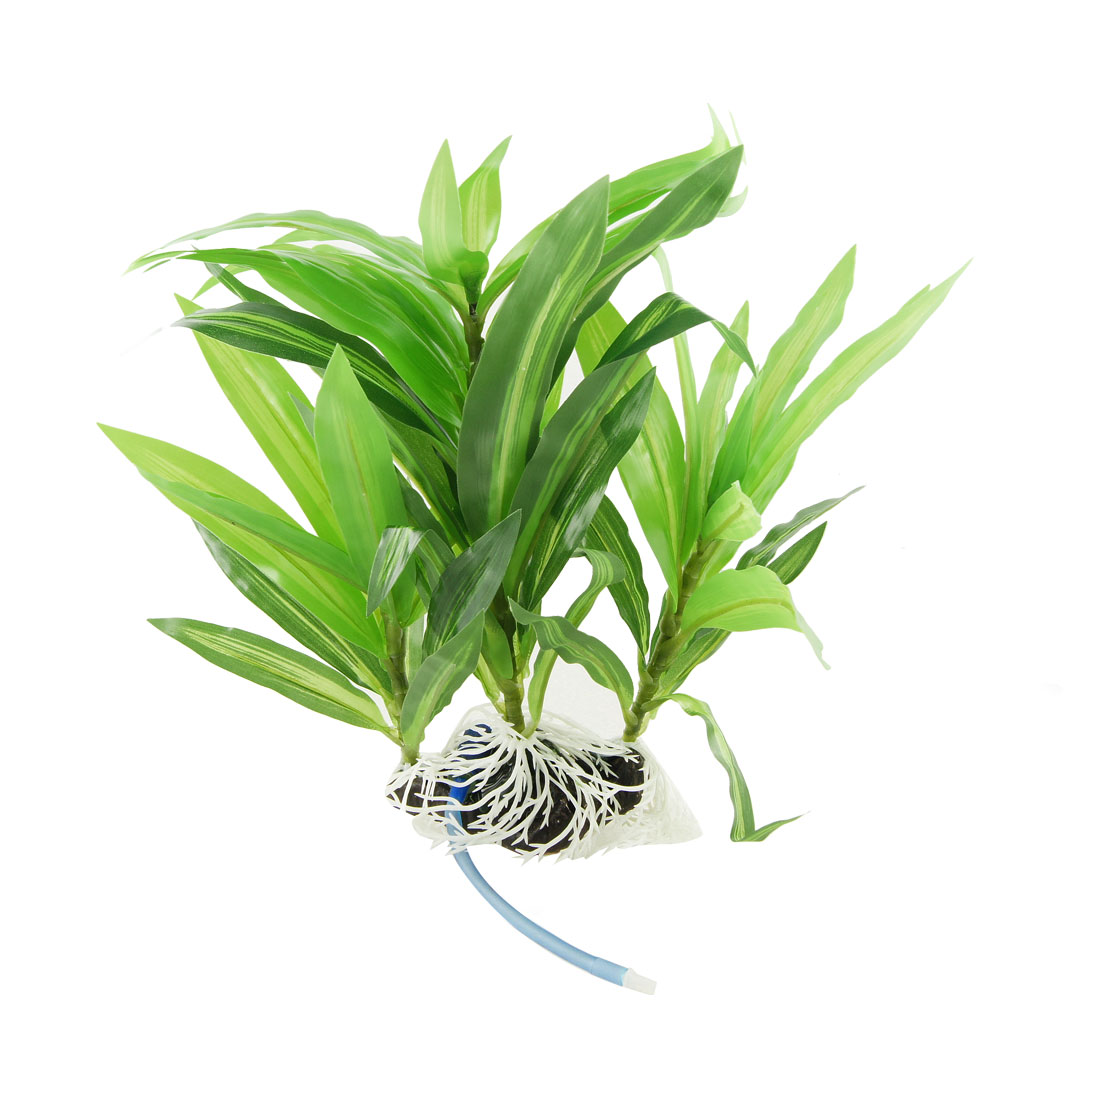 "Green Narrow Leaves 12.2"" High Plastic Plant Decoration for Fish Tank"